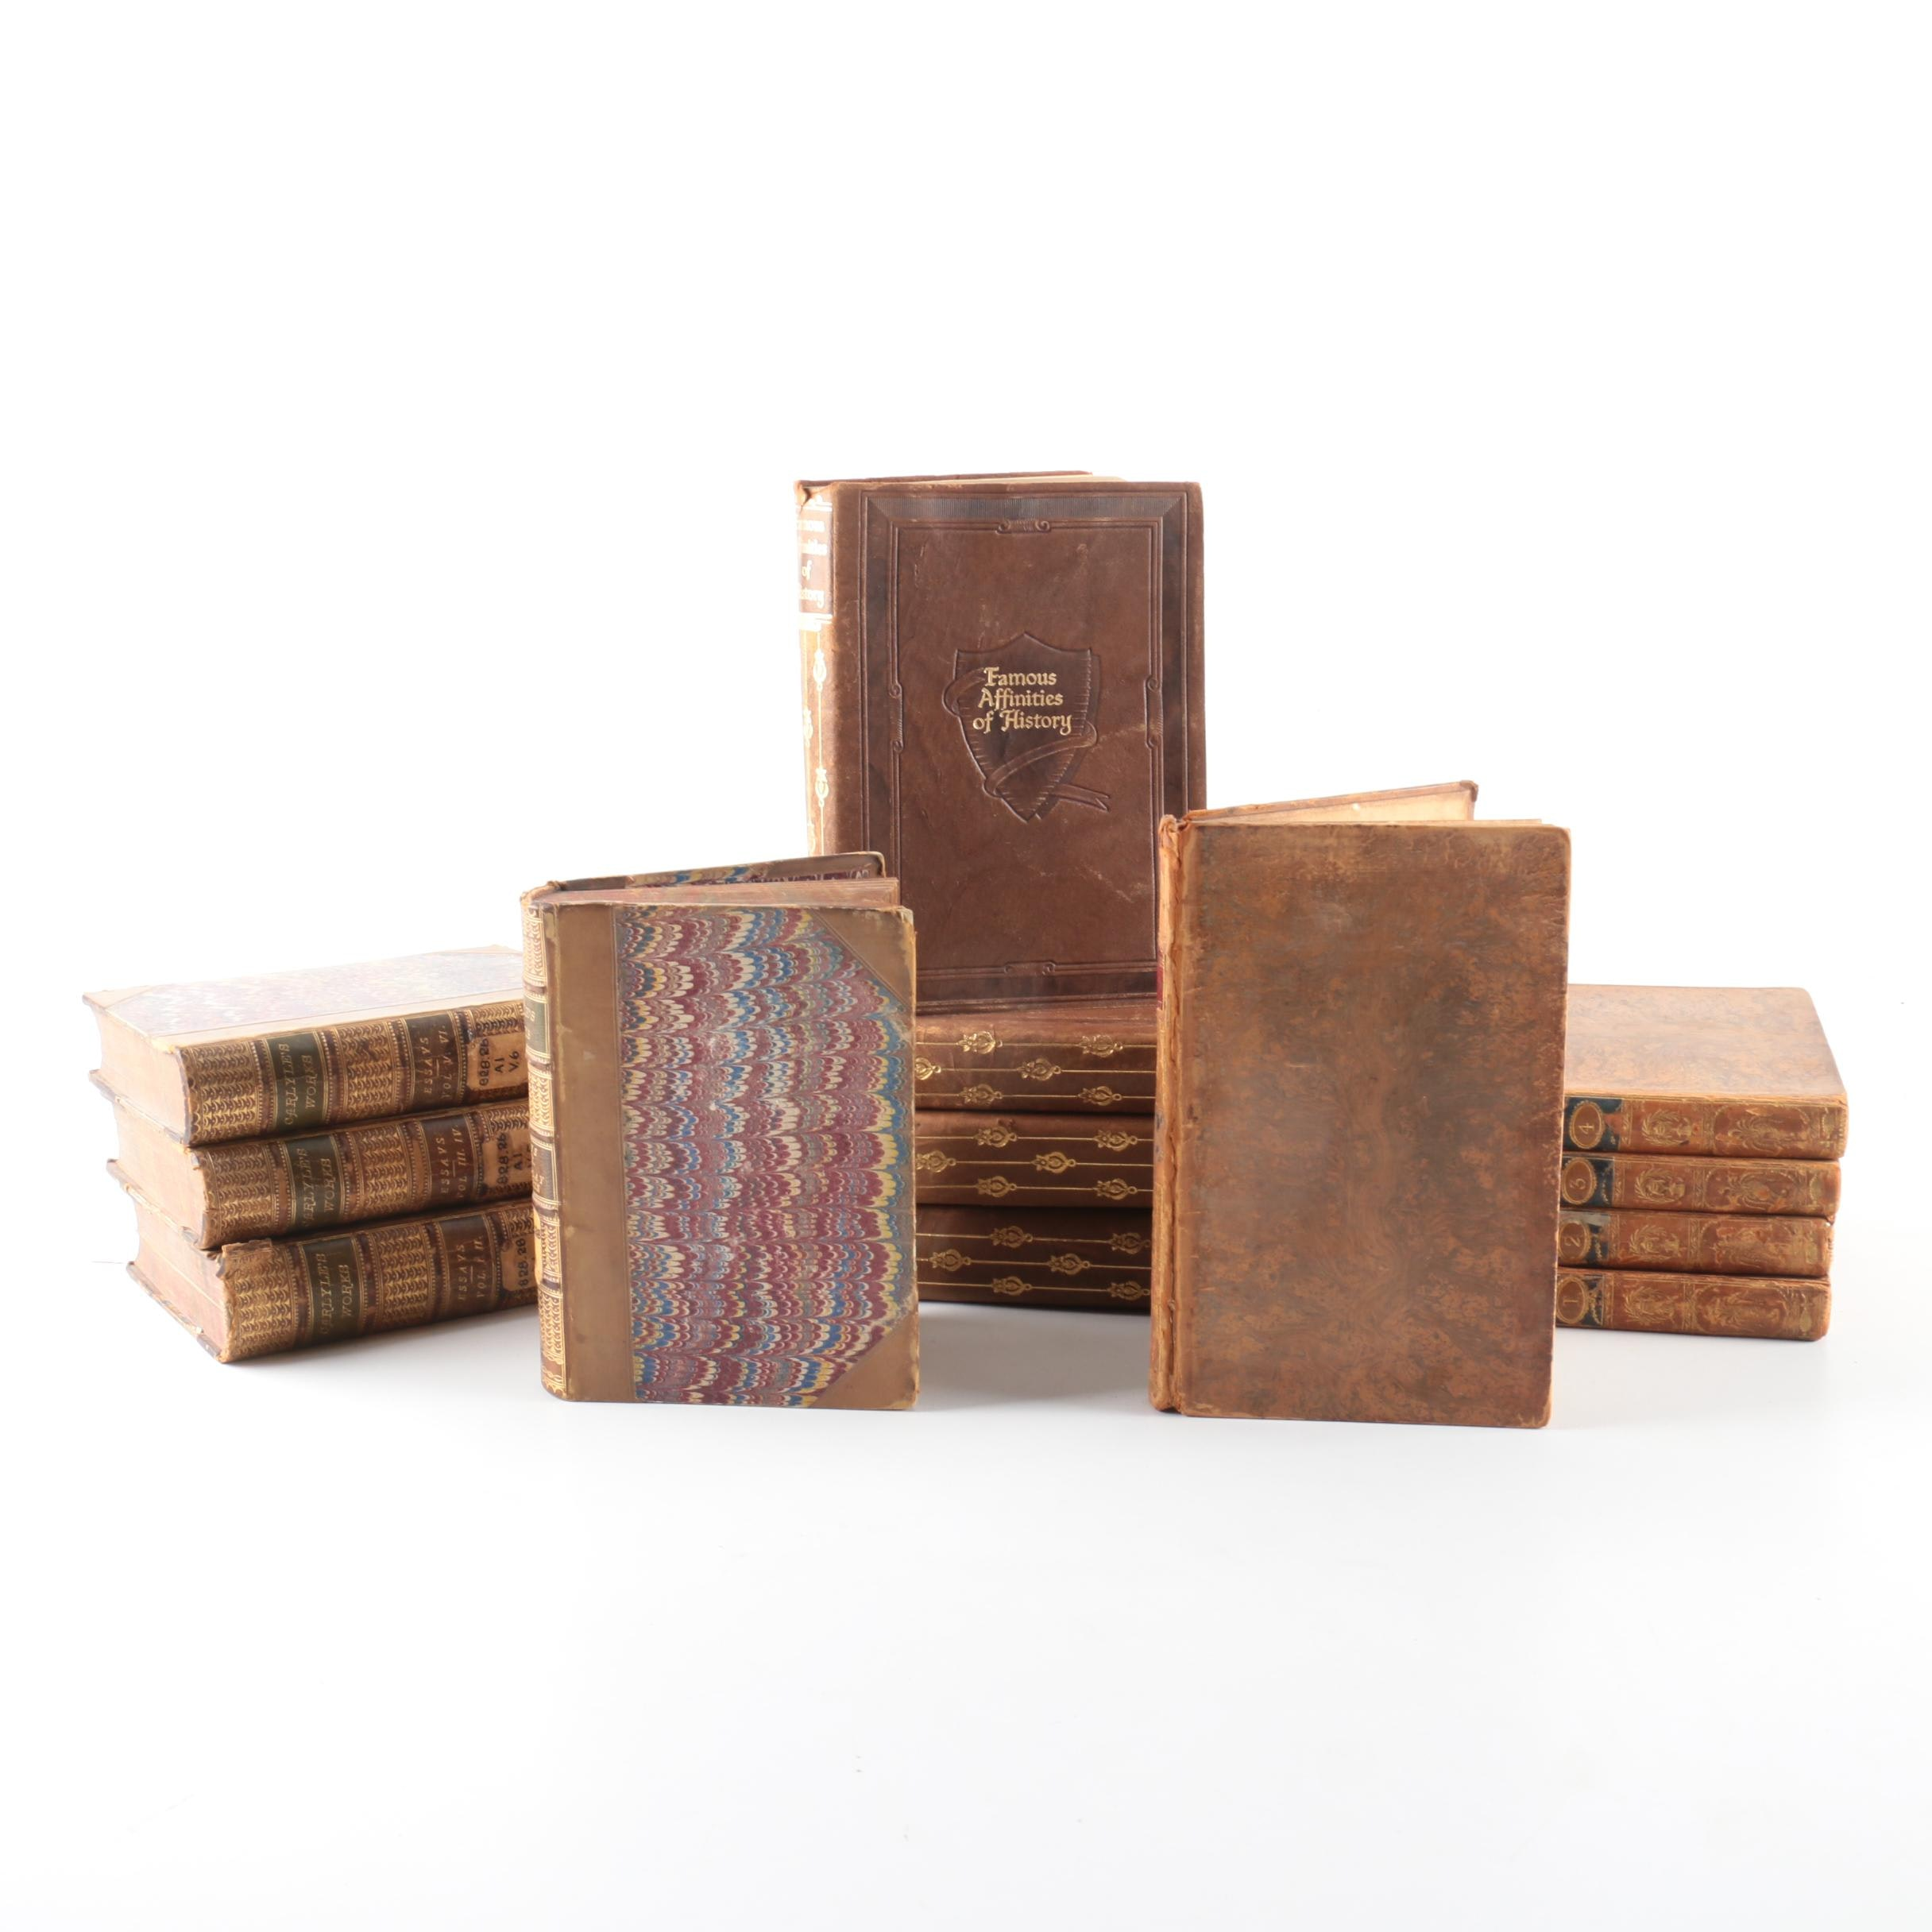 Thomas Carlyle and Other Leather Bound Antiquarian Fiction, Poetry, and Essays